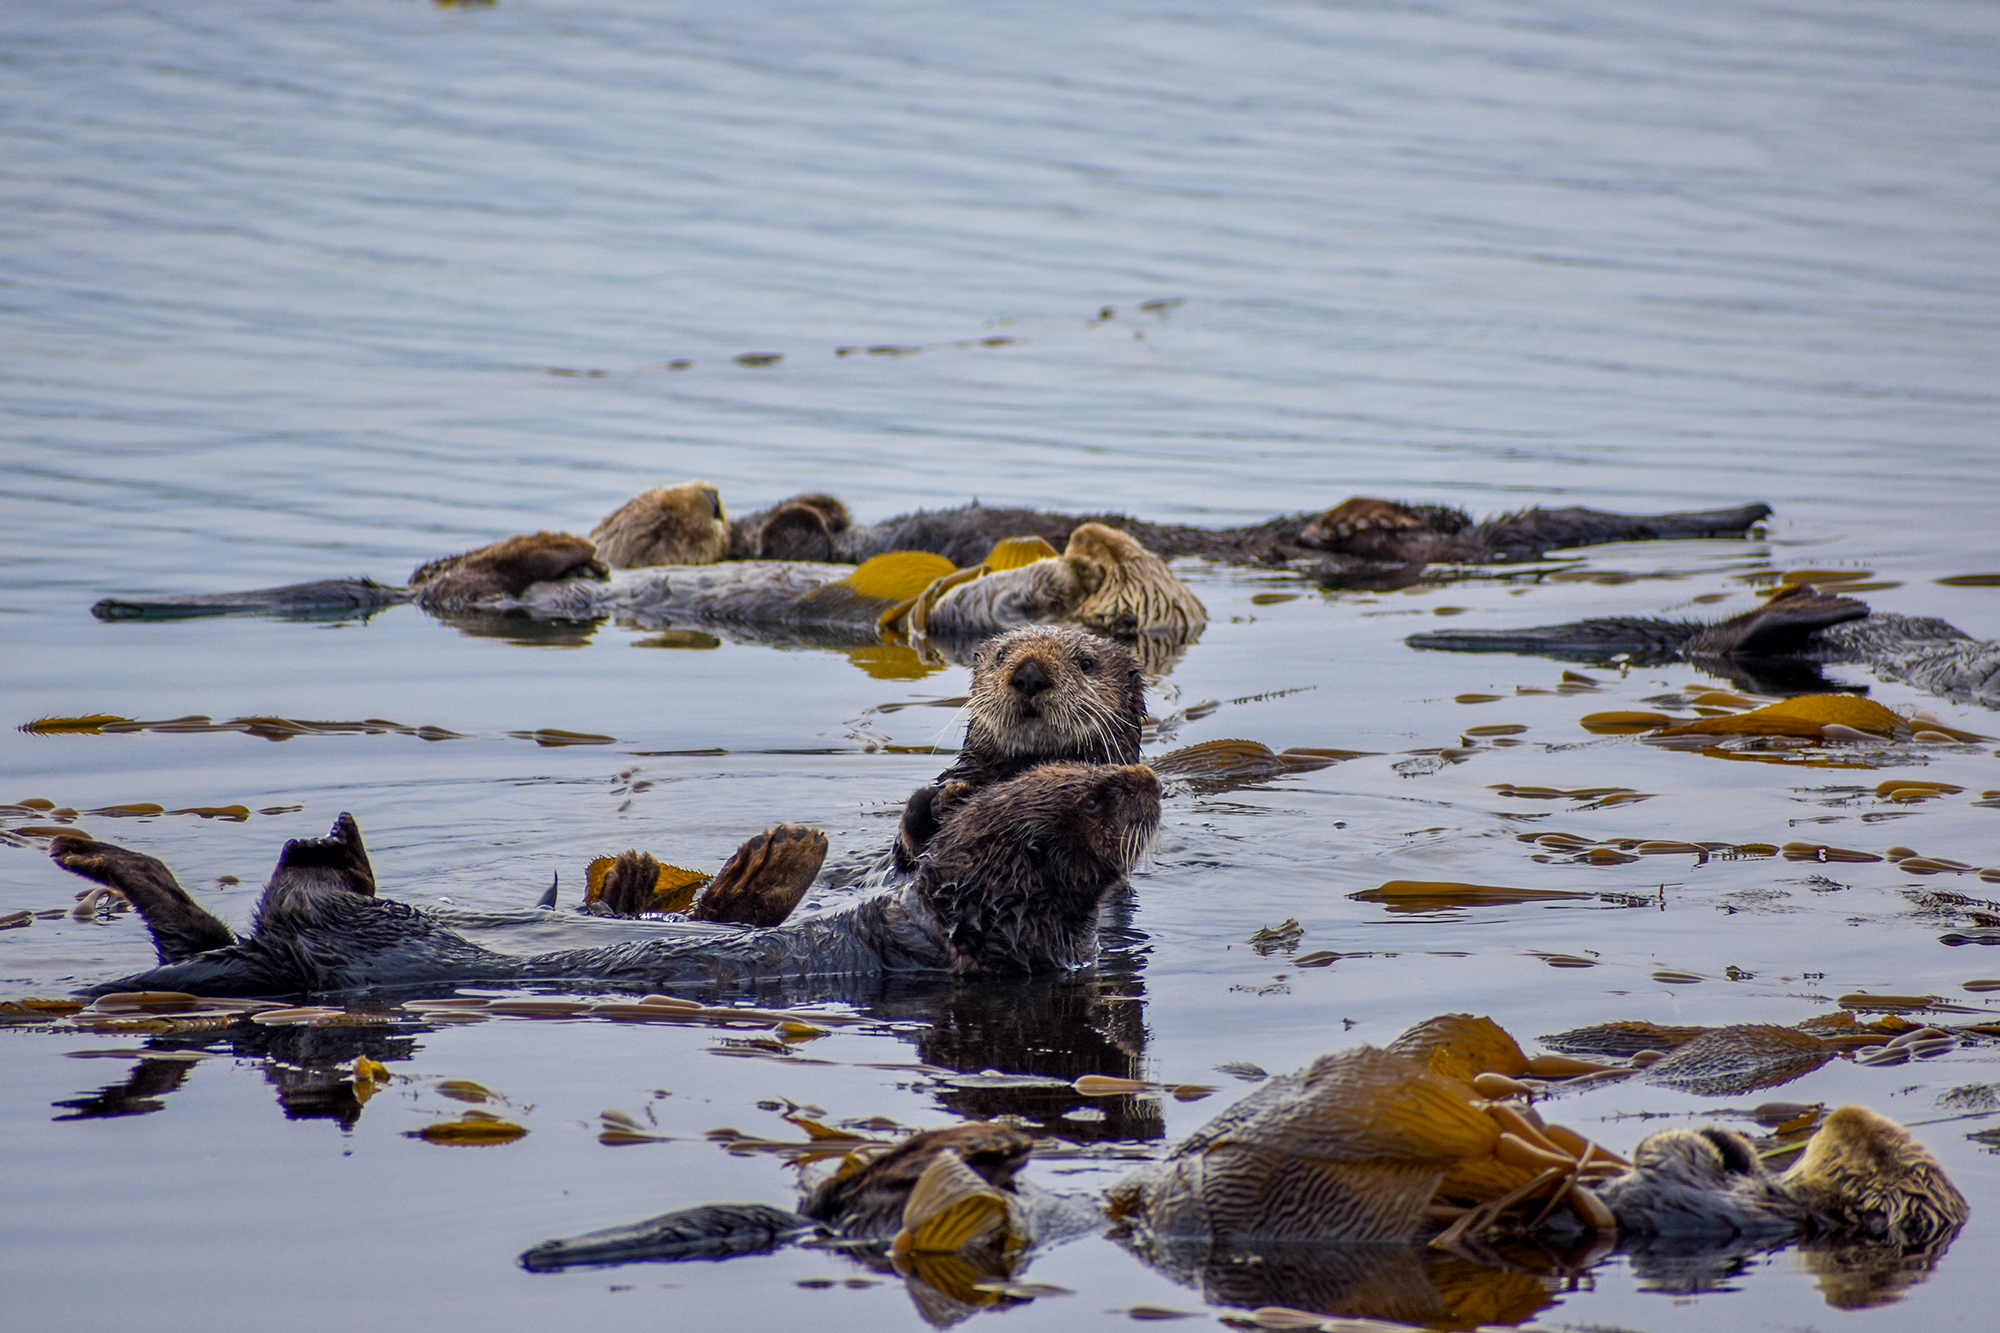 Sea otters begin to wake up after a good night's rest in Morro Bay, California.